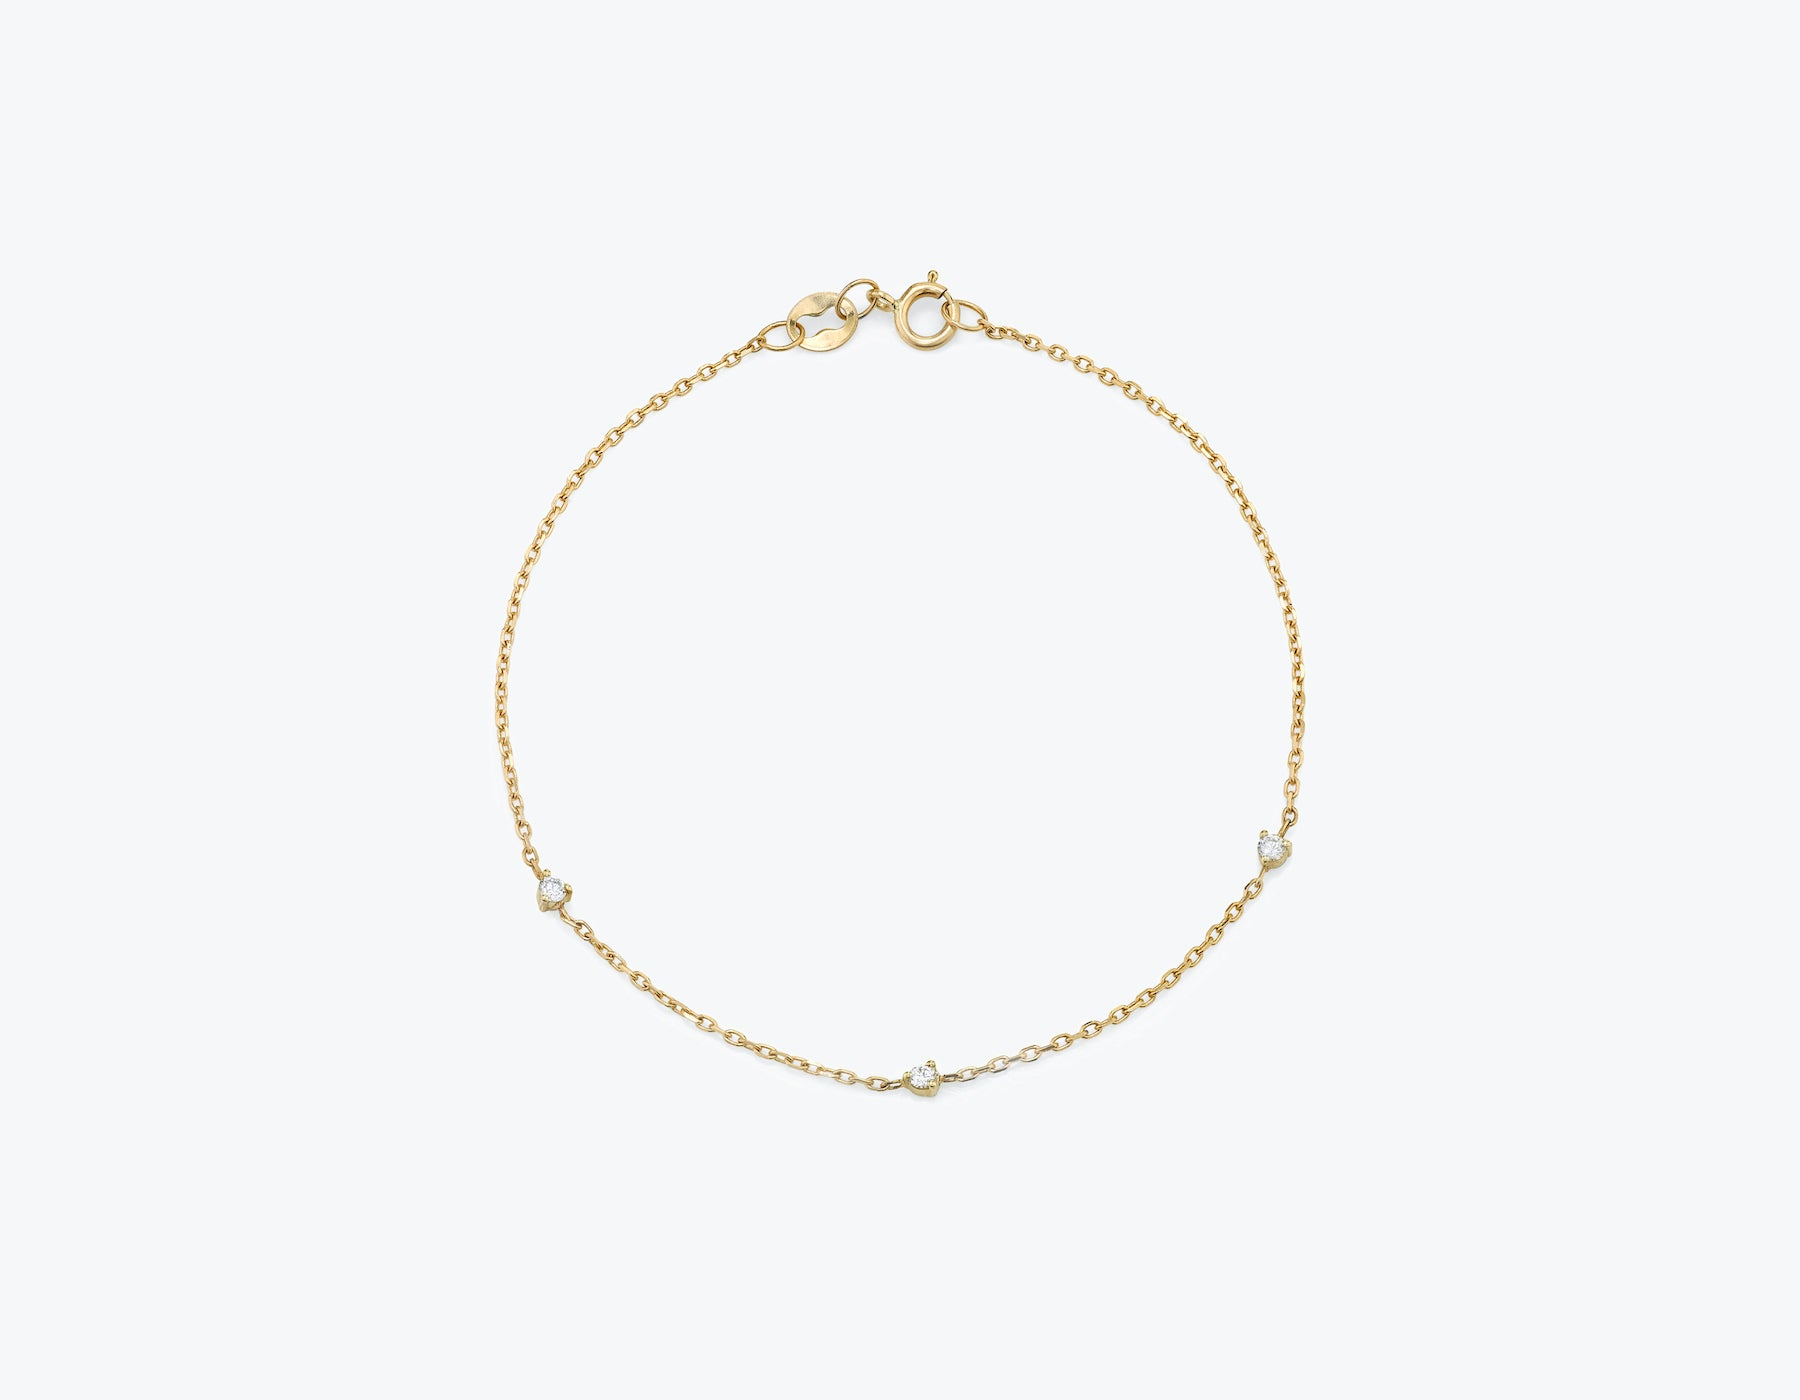 Vrai Tiny Diamond Station Bracelet simple modern, 14K Yellow Gold